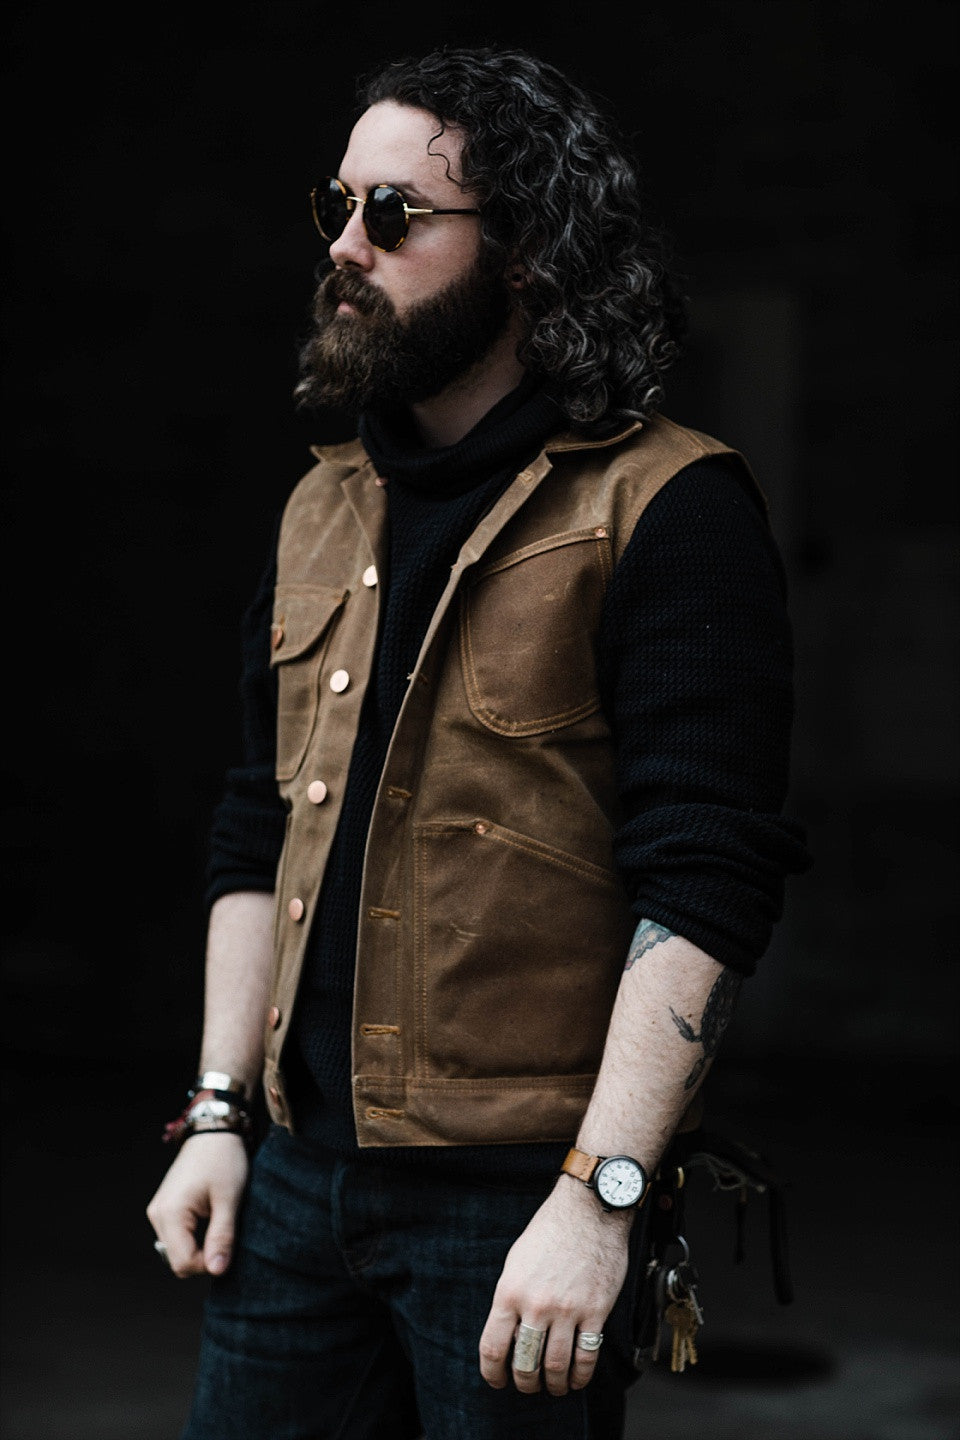 Mercy Supply Co. Vest and Shwood Sunglasses by James Dant